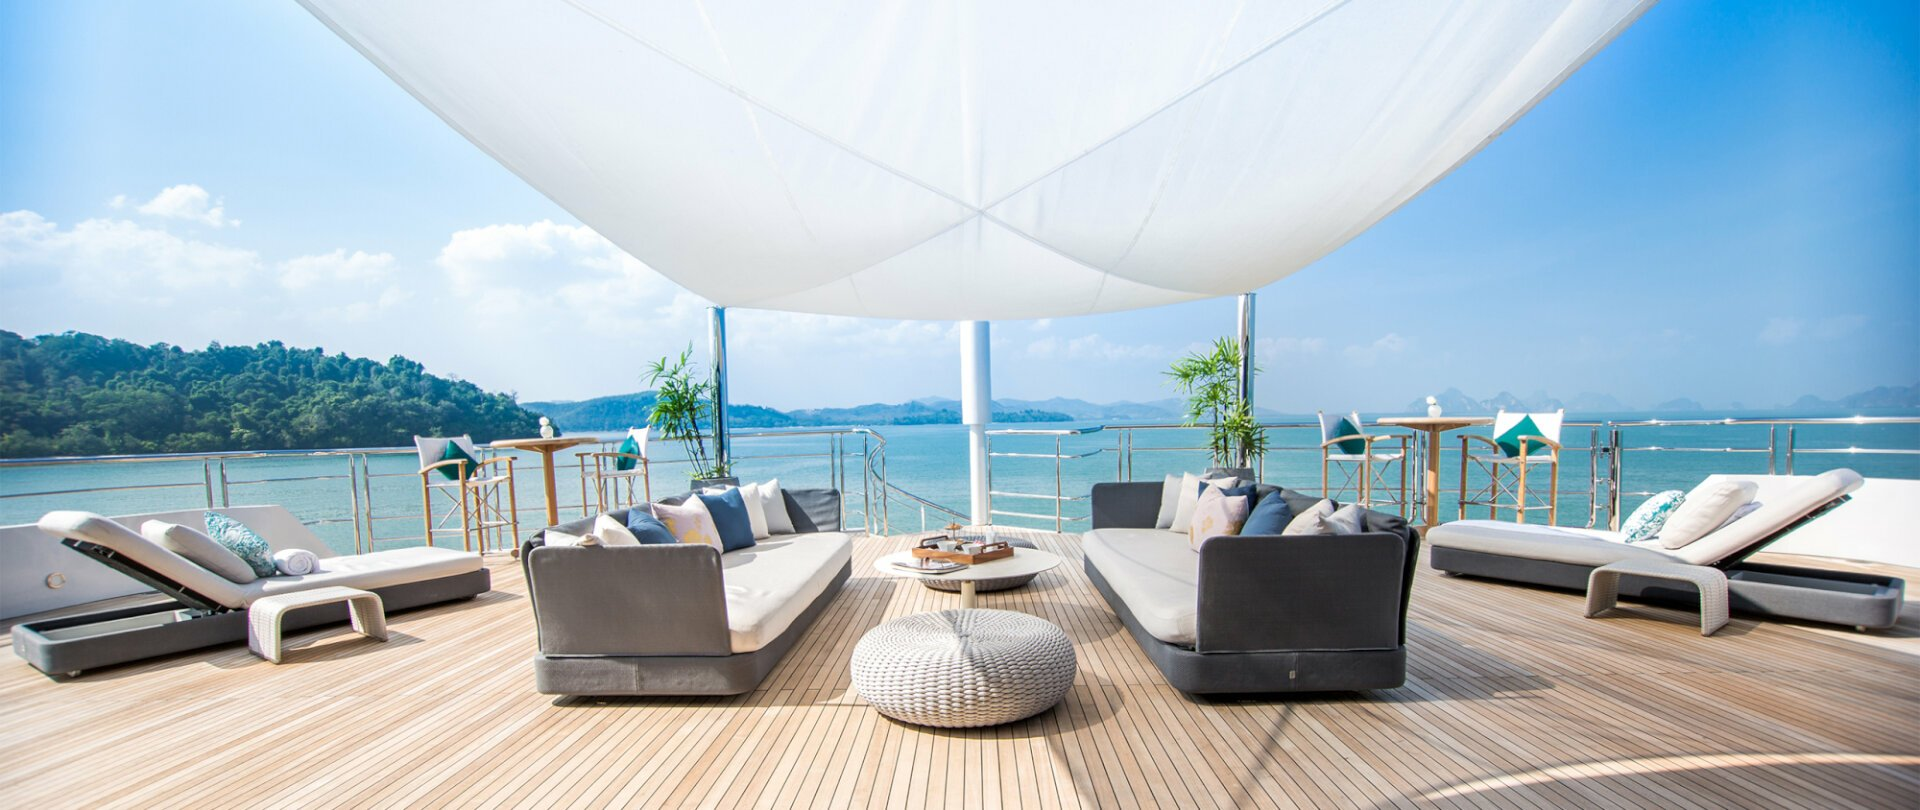 View of Thailand coast from the deck of a yacht